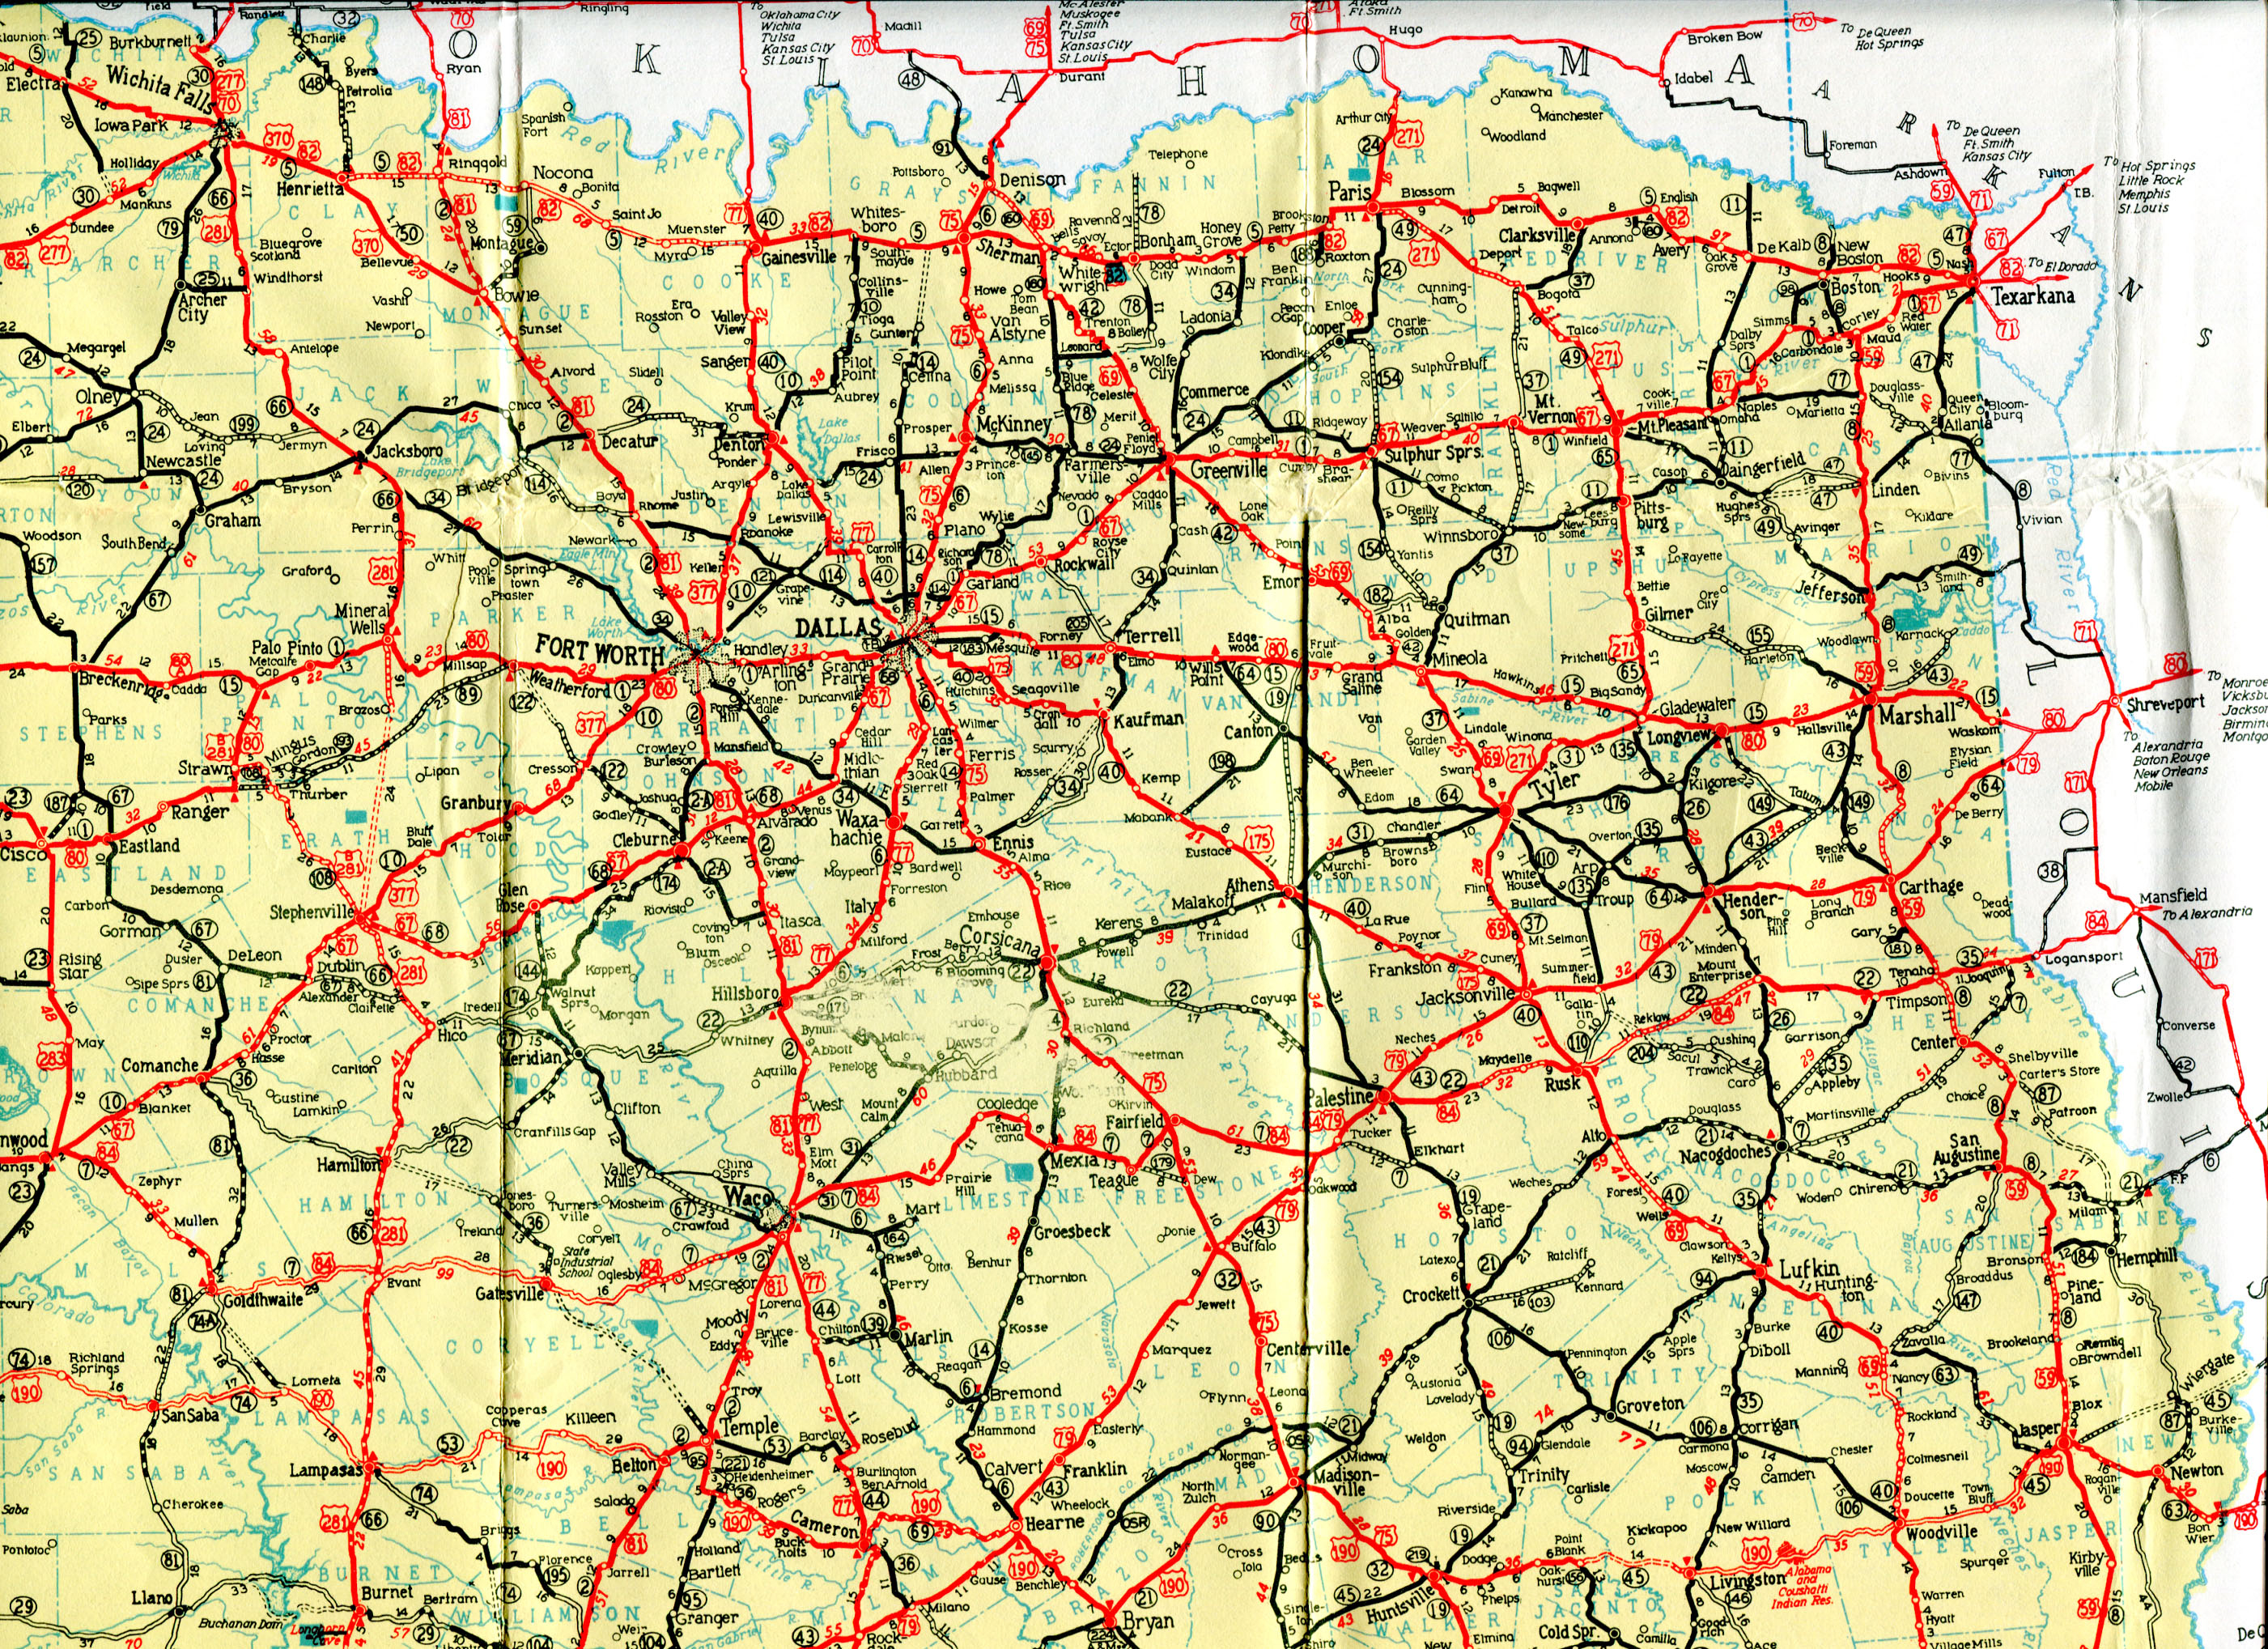 Old Highway Maps Of Texas - Street Map Of Mckinney Texas